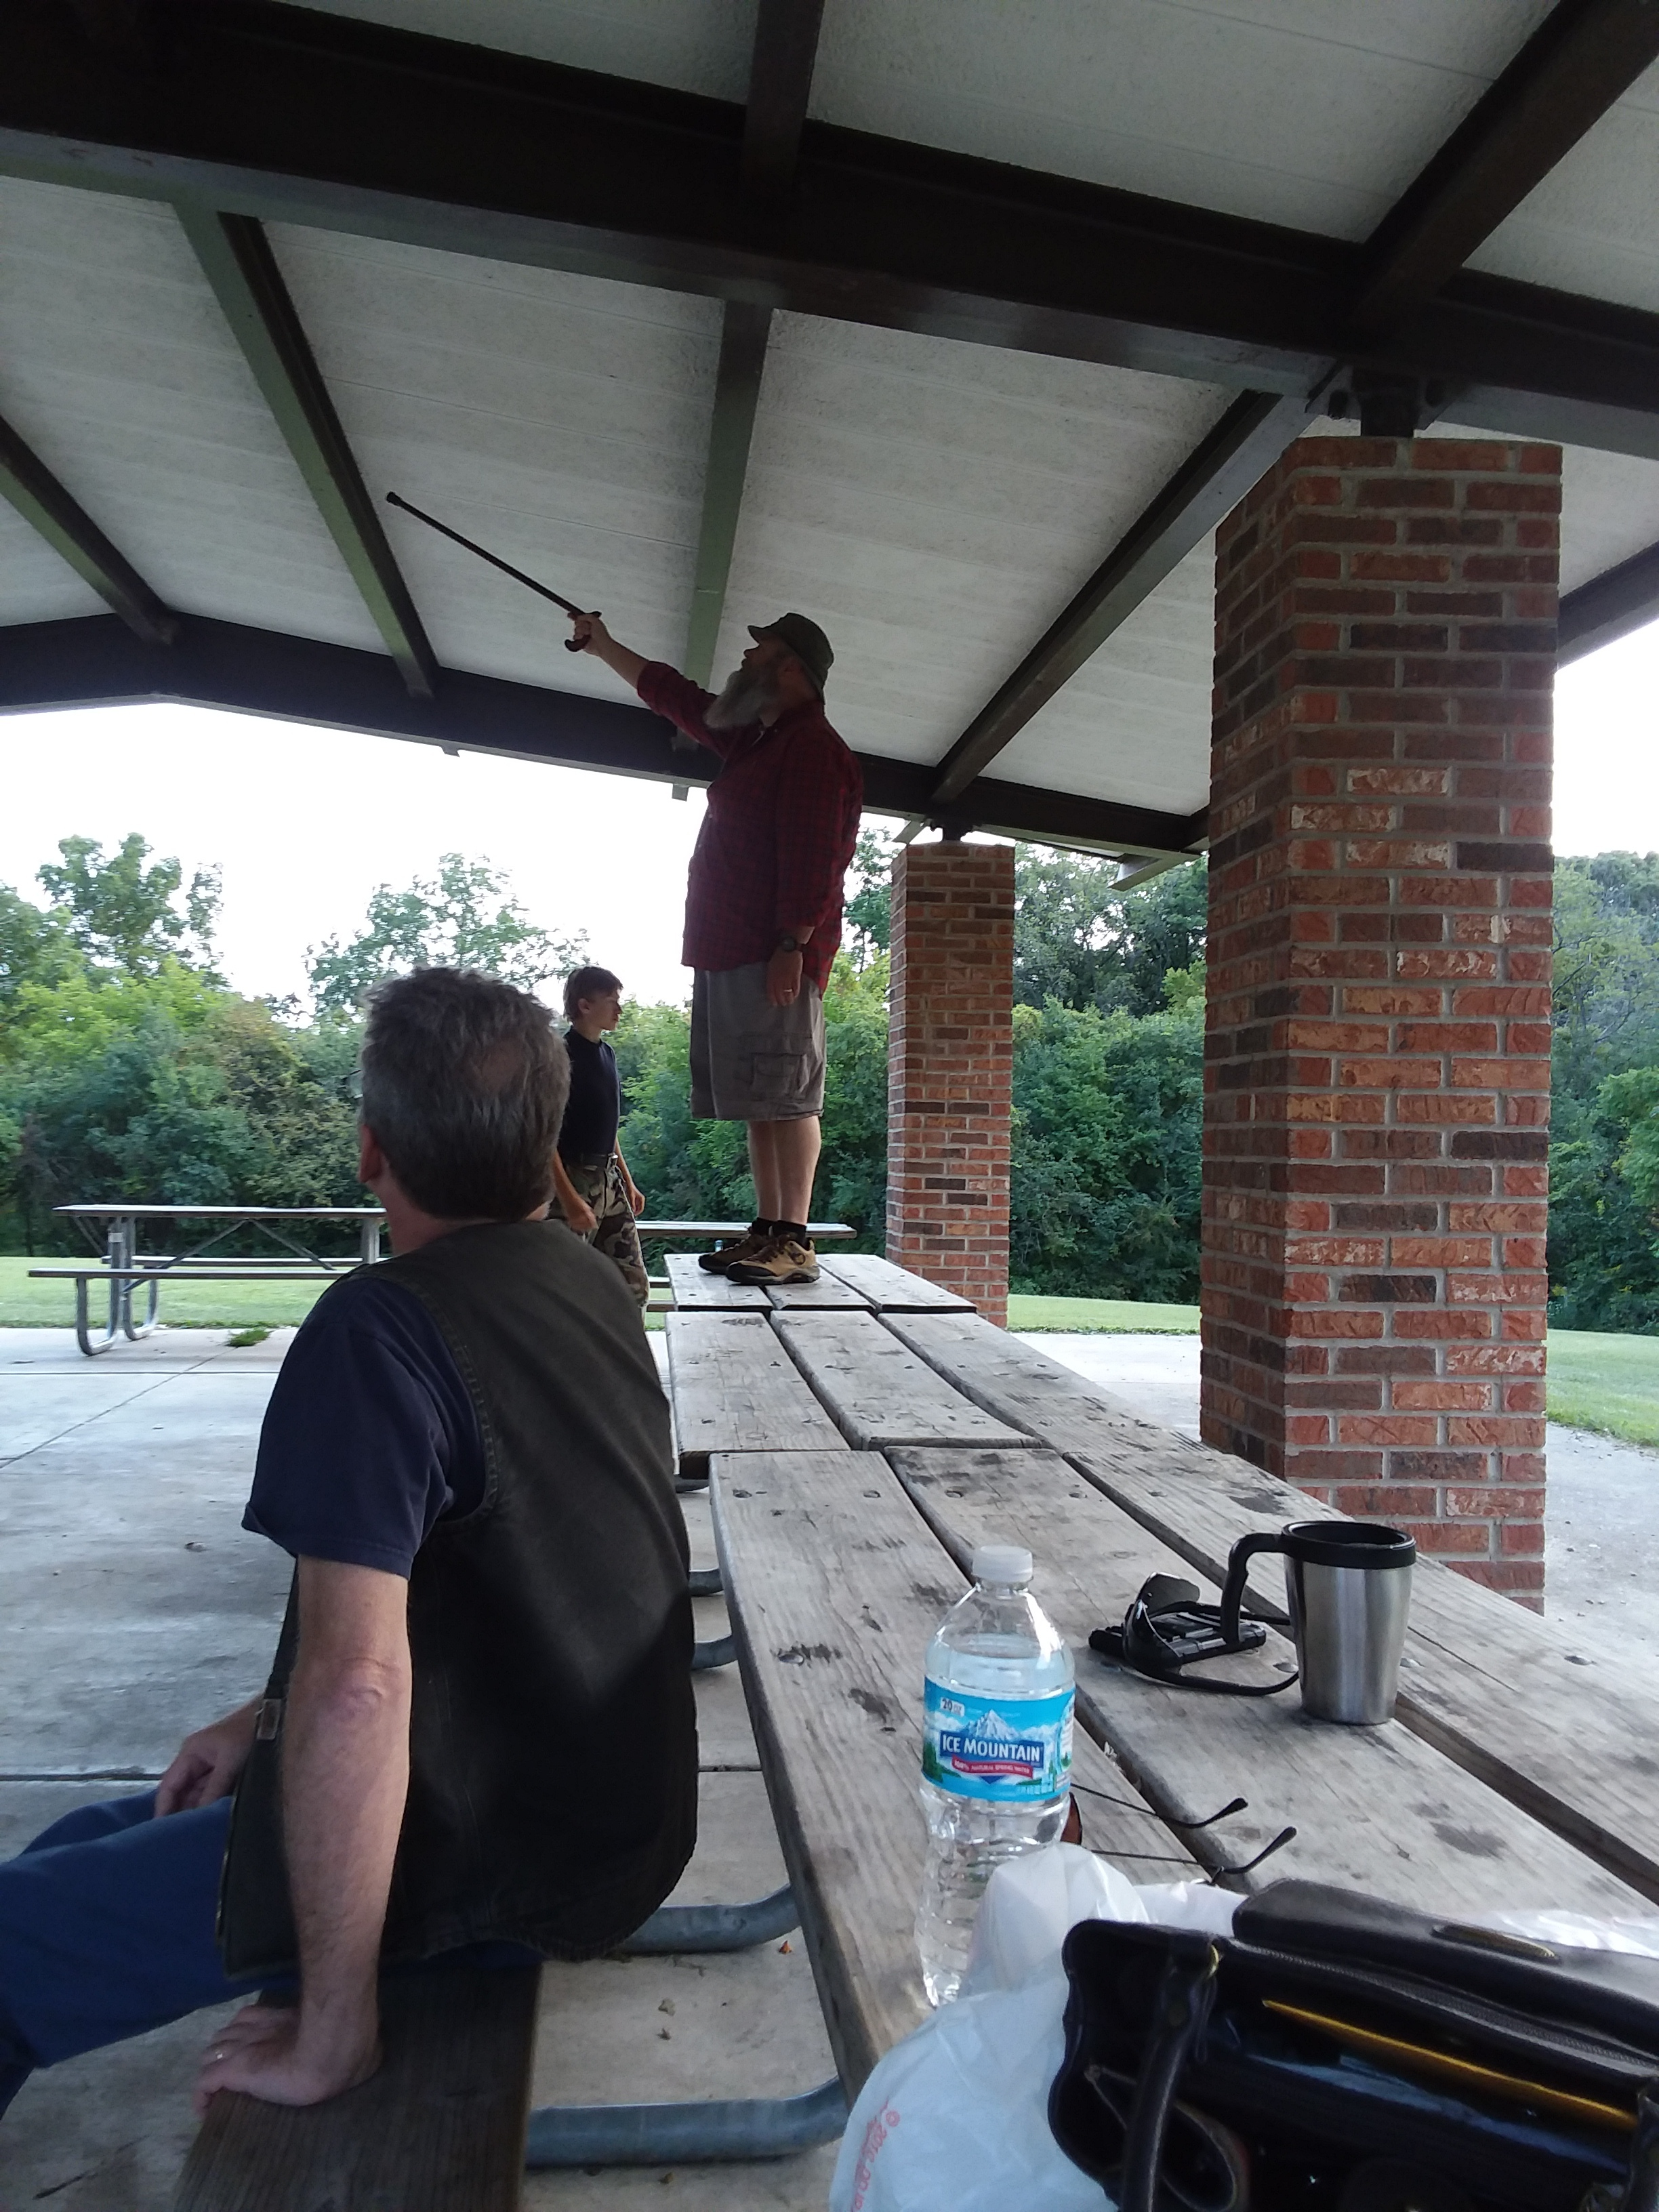 Mike (N9PLG), Kyle (Strango), and John (KD9BYW). BYW pointing out nature in the upper foundation of the outdoor structure.